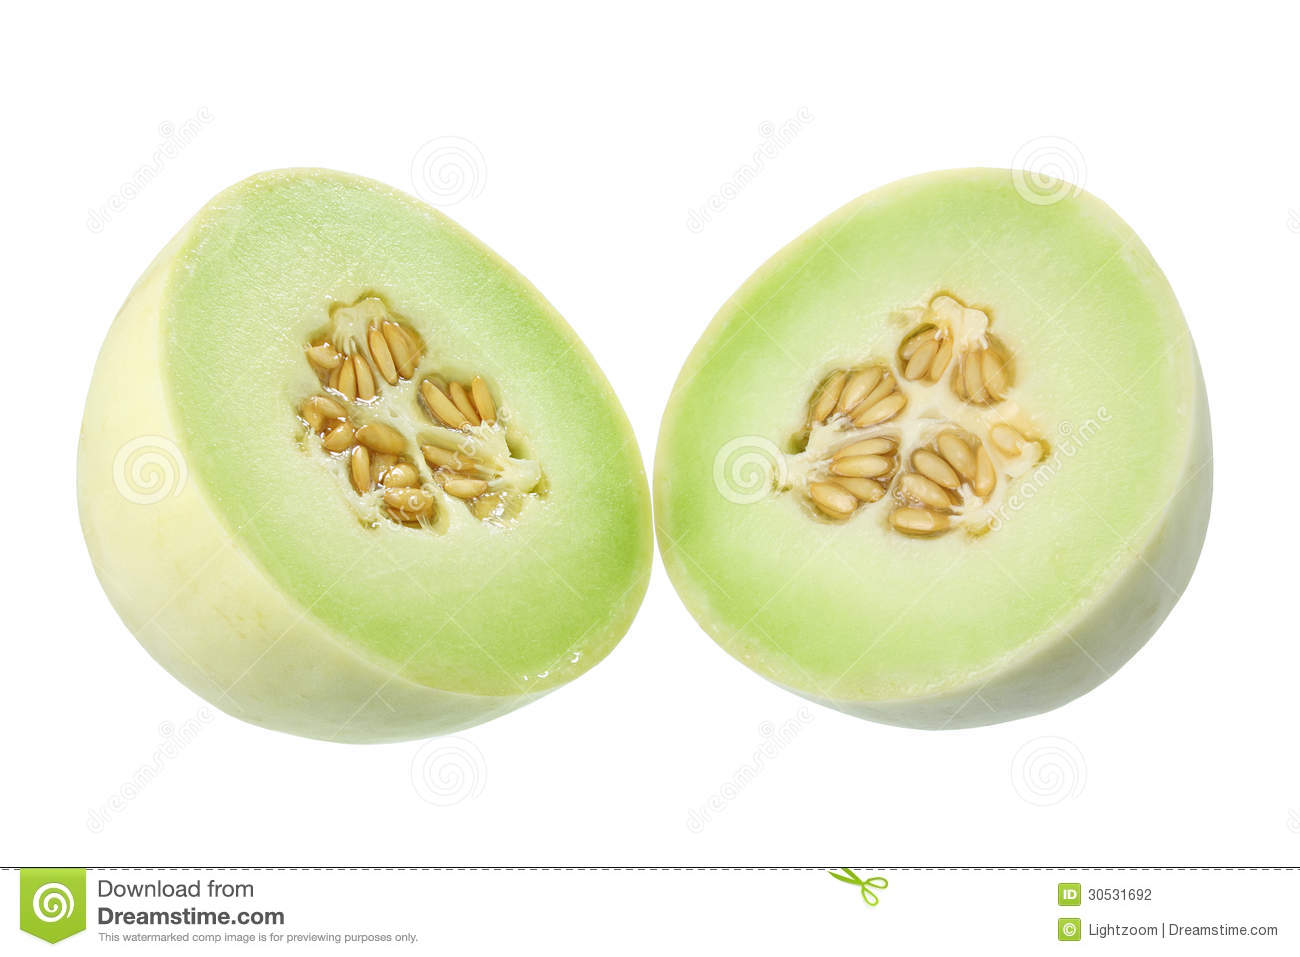 how to buy a honeydew melon